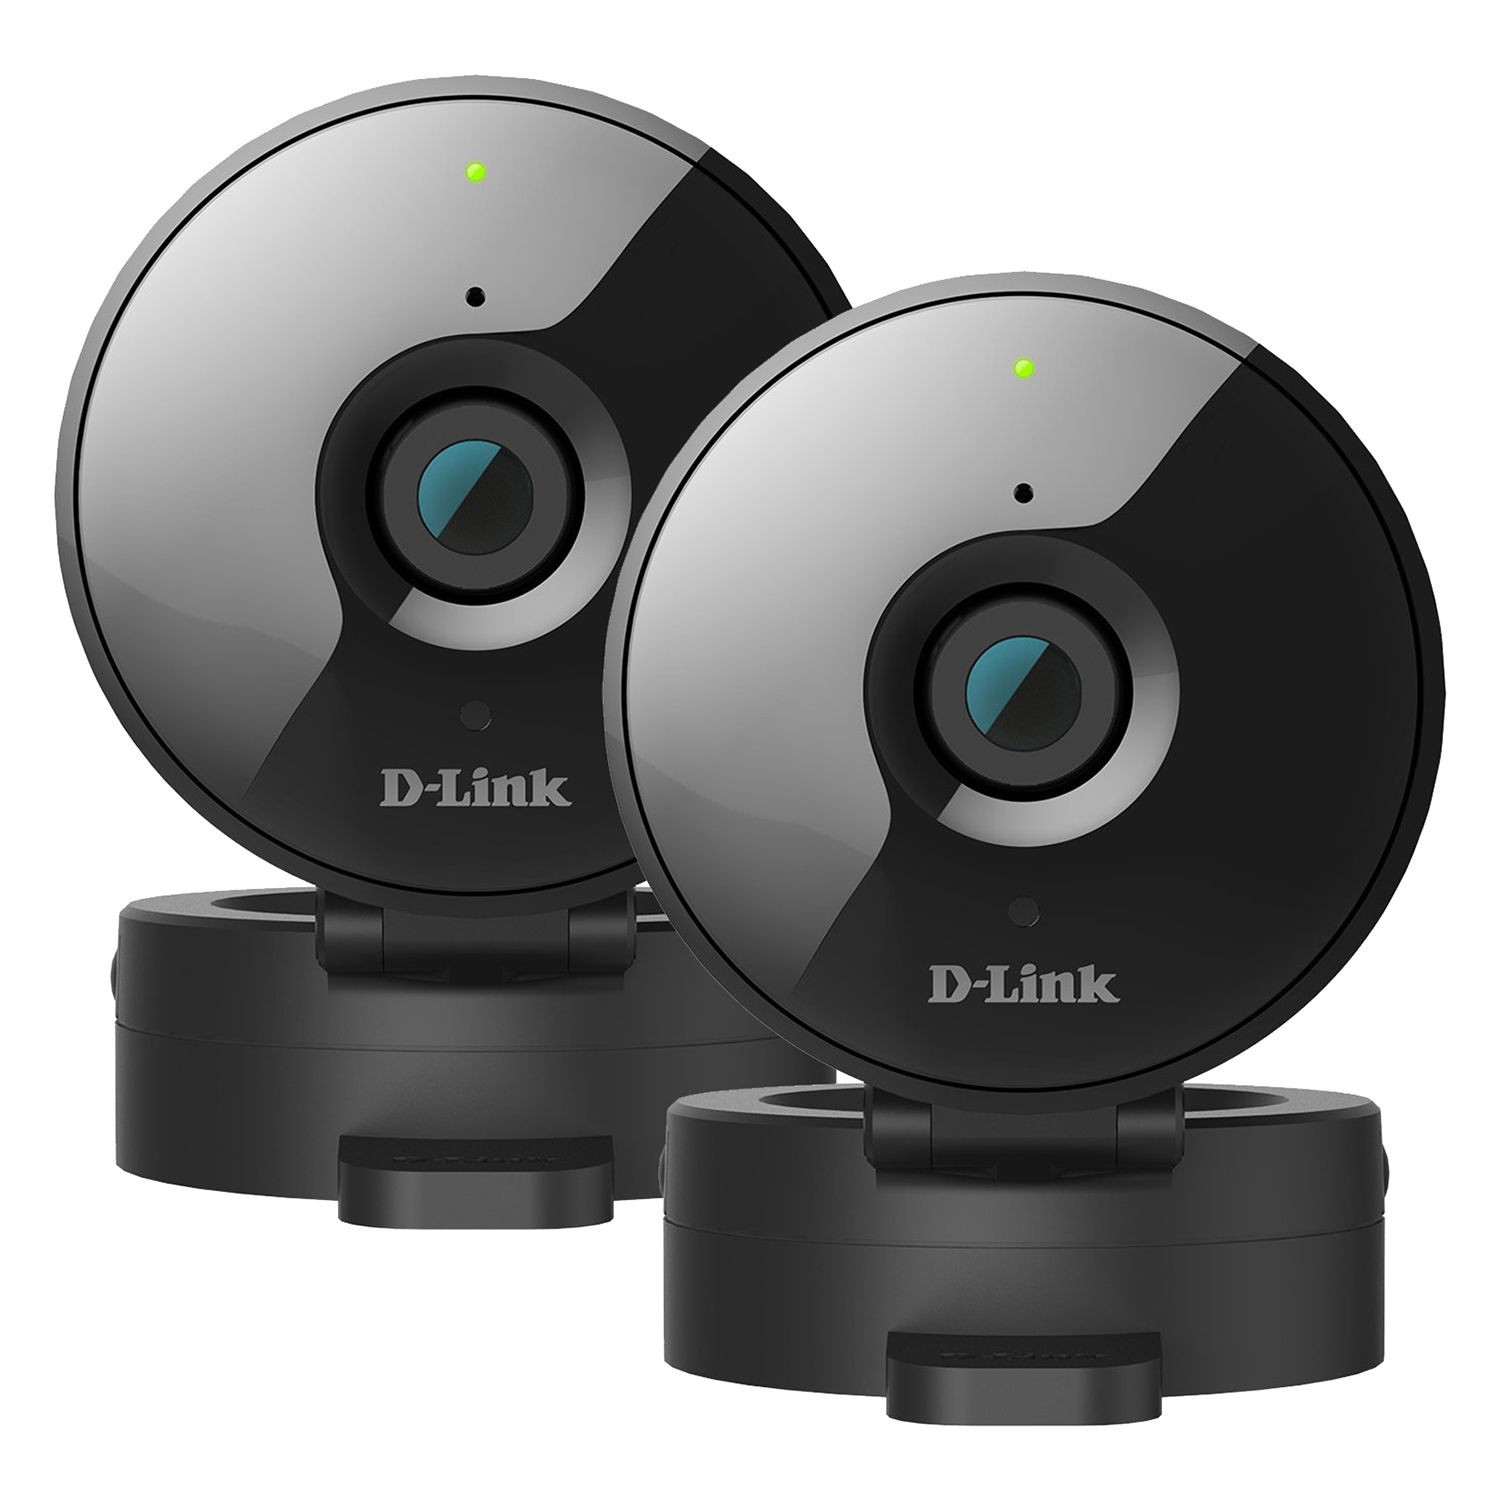 Refurbished 2-Pack D-Link HD WiFi 720P Home Security Camera with Night Vision - DCS-936L, Works with Google Assistant